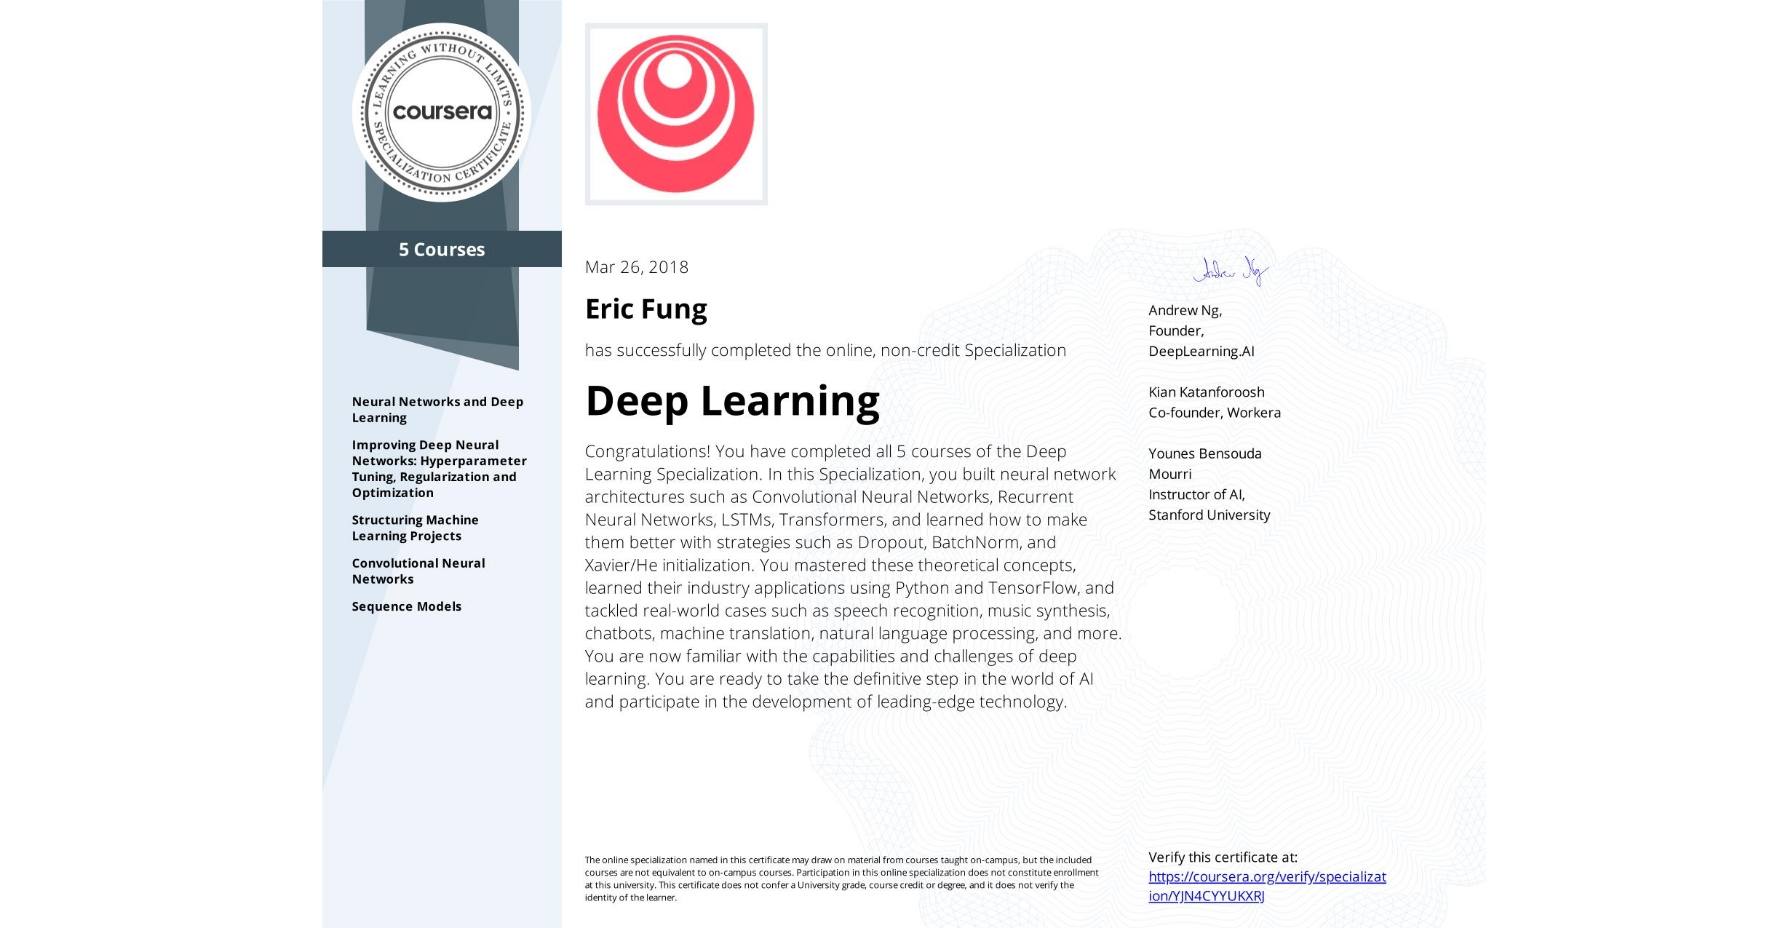 View certificate for Eric Fung, Deep Learning, offered through Coursera. The Deep Learning Specialization is designed to prepare learners to participate in the development of cutting-edge AI technology, and to understand the capability, the challenges, and the consequences of the rise of deep learning. Through five interconnected courses, learners develop a profound knowledge of the hottest AI algorithms, mastering deep learning from its foundations (neural networks) to its industry applications (Computer Vision, Natural Language Processing, Speech Recognition, etc.).